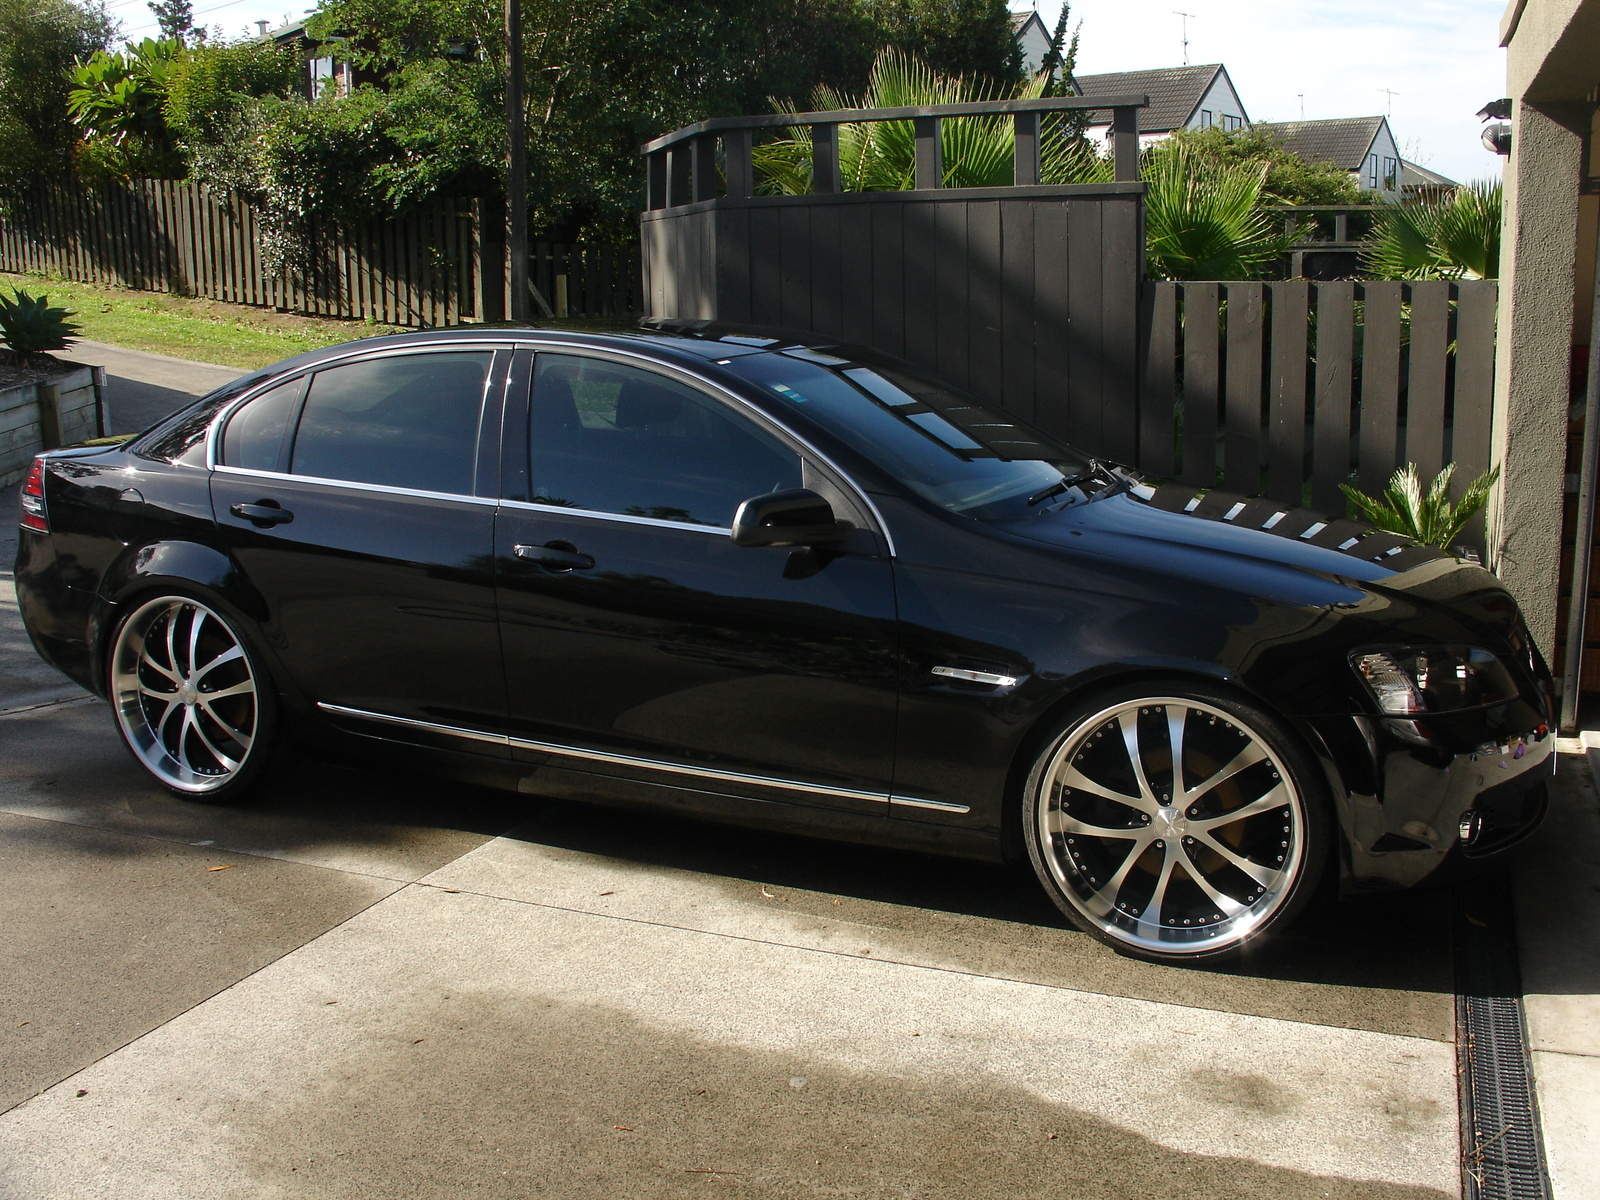 2007 Holden Commodore Calais V On 22 Inch Rims Only The Cleanest